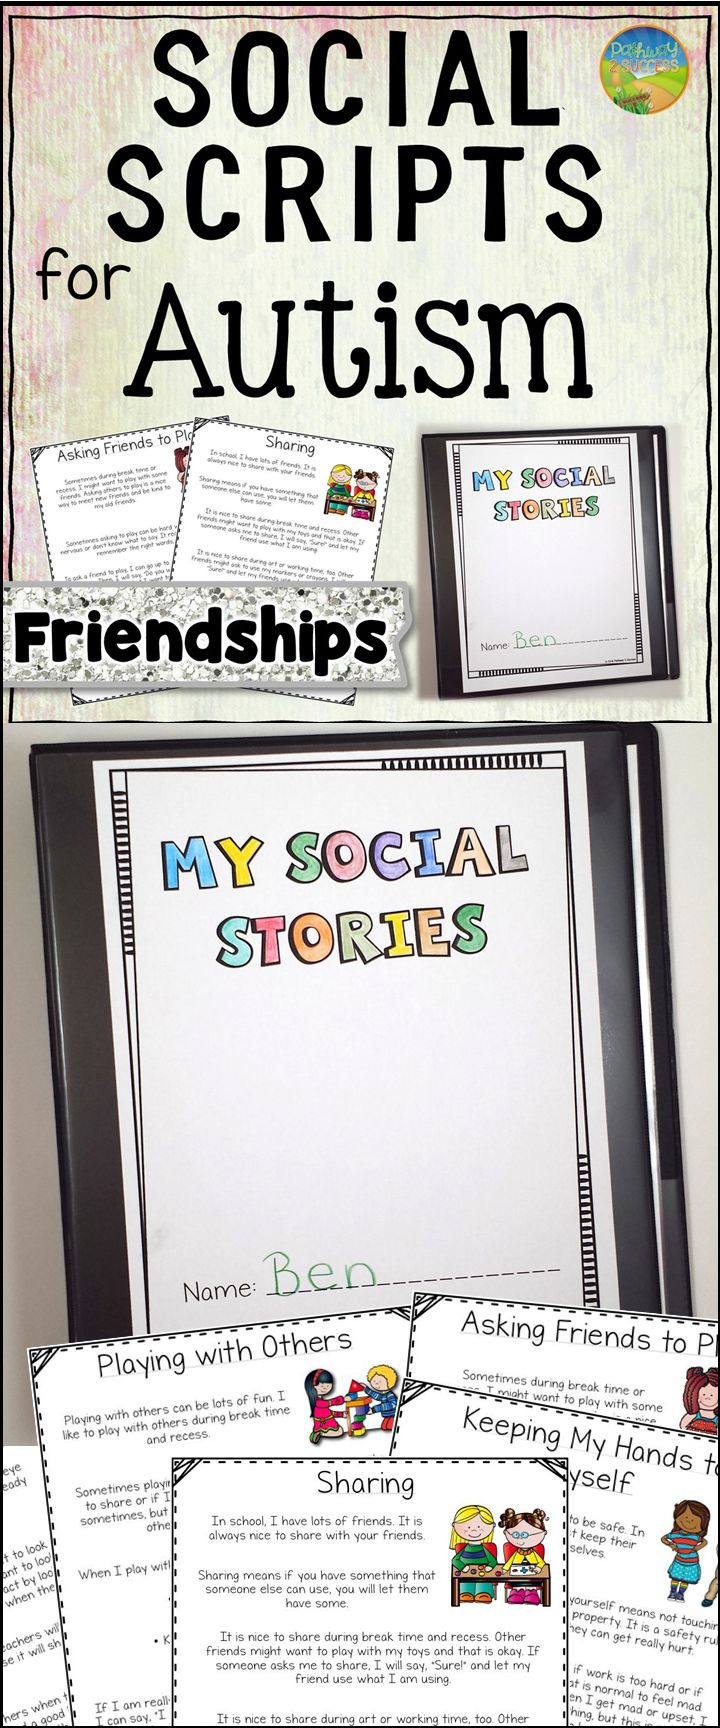 Social Scripts for Autism - Teaching about Friendship Skills